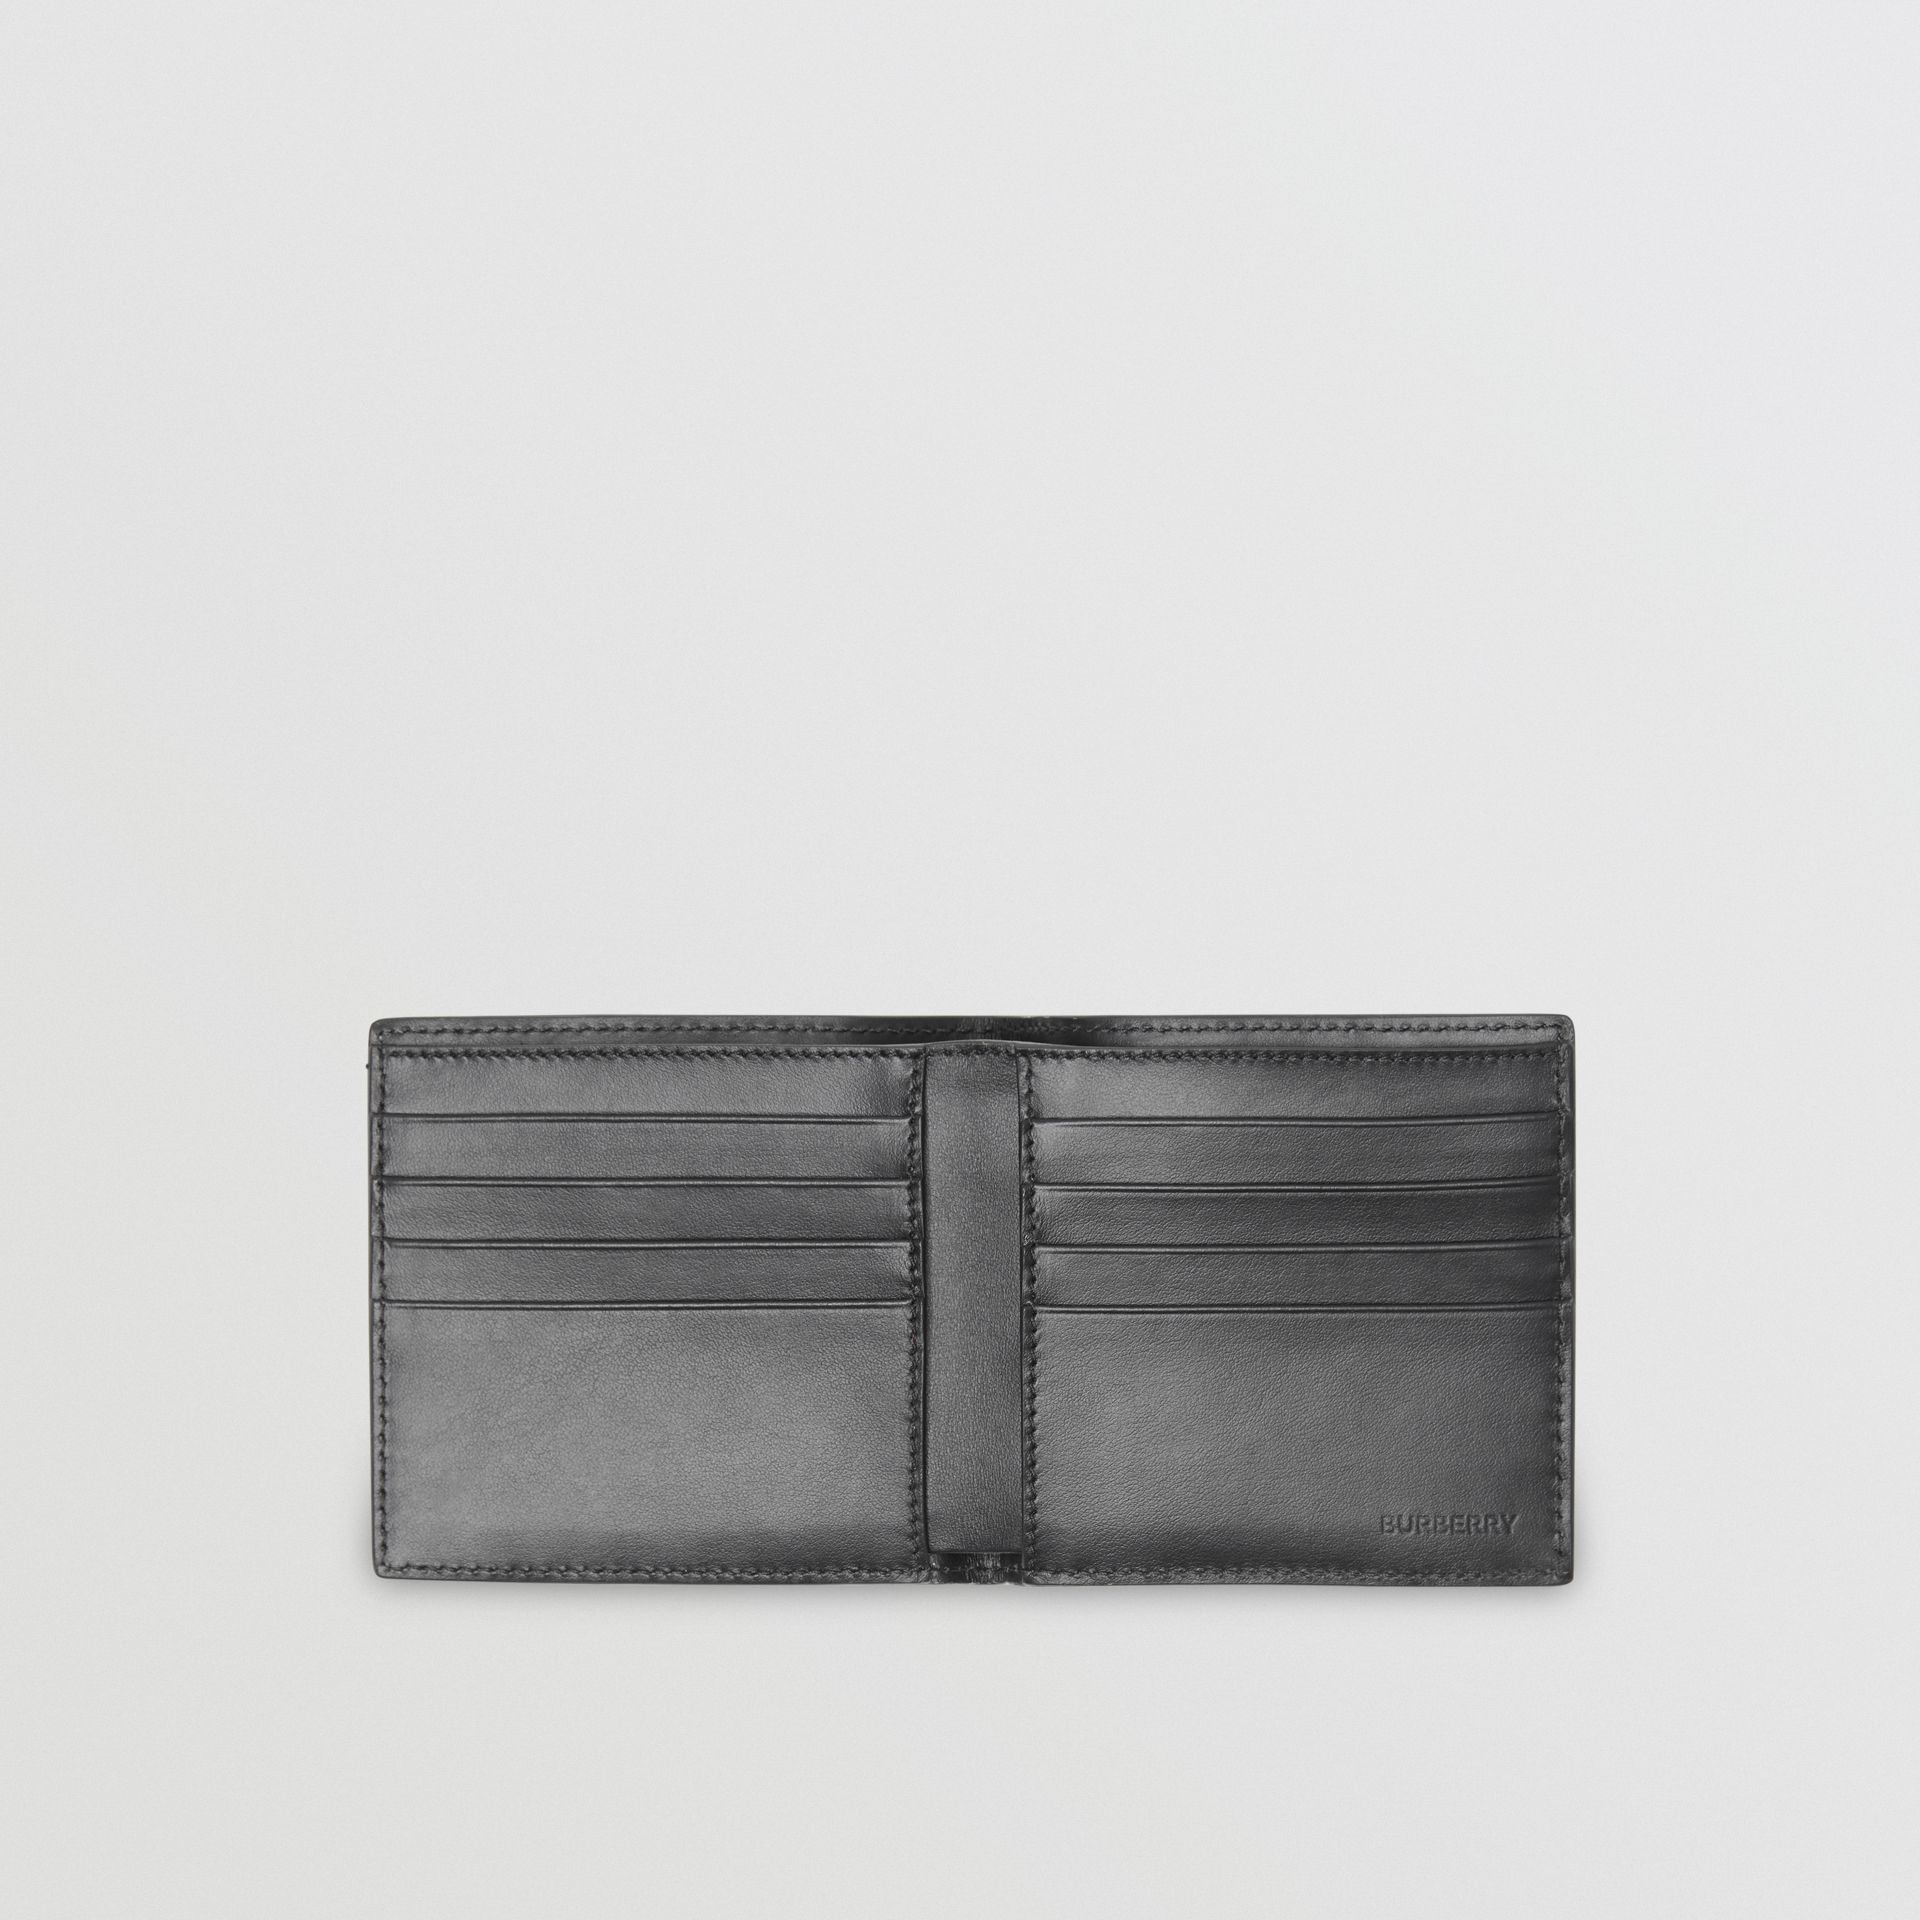 Monogram Leather International Bifold Wallet in Black | Burberry United States - gallery image 3